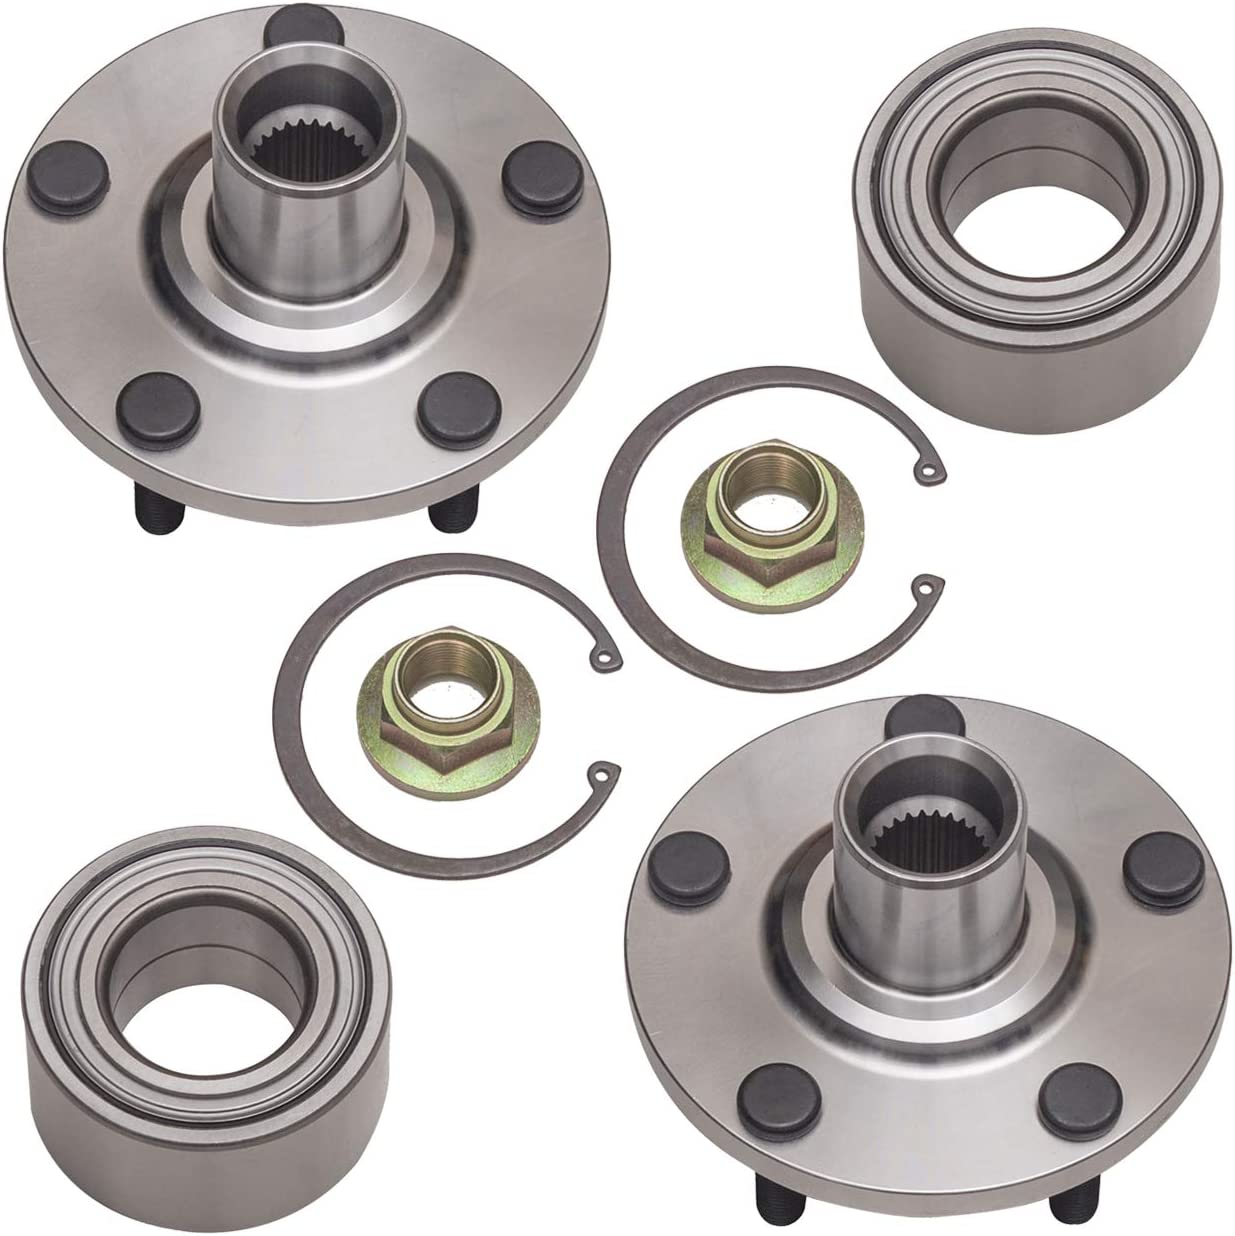 Front Wheel Bearing and Hub Assembly Compatible With 1992-2003 Toyota Camry Solara 5 Stud Hub Repair Kit 1999-2003 Lexus RX300 Pair TUCAREST 518508 x2 AWD Only 2.2L and 2.4L Engine